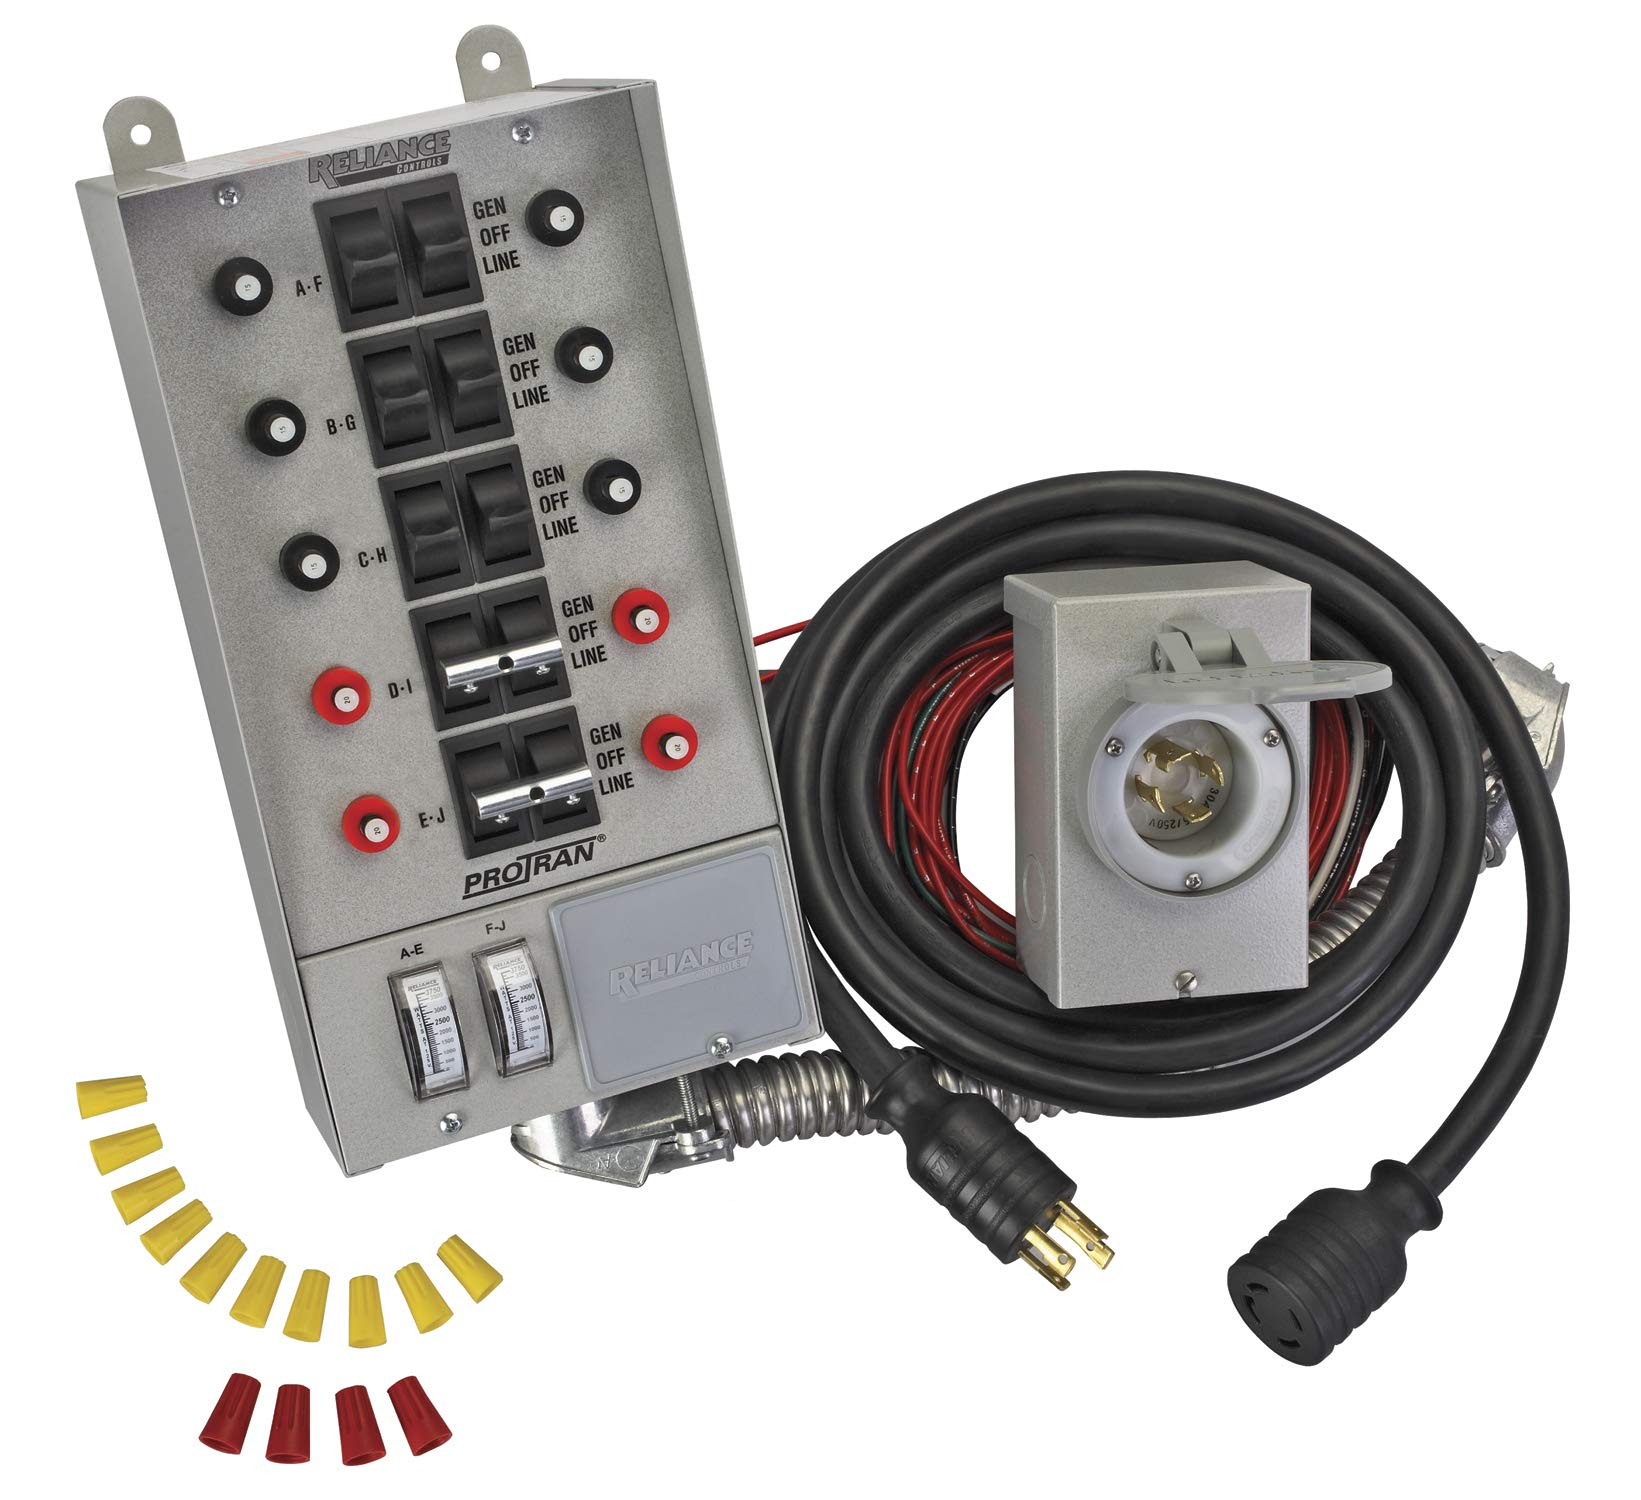 Reliance Controls 31410CRK Pro/Tran 10-Circuit 30 Amp Generator Transfer Switch Kit by Reliance Controls